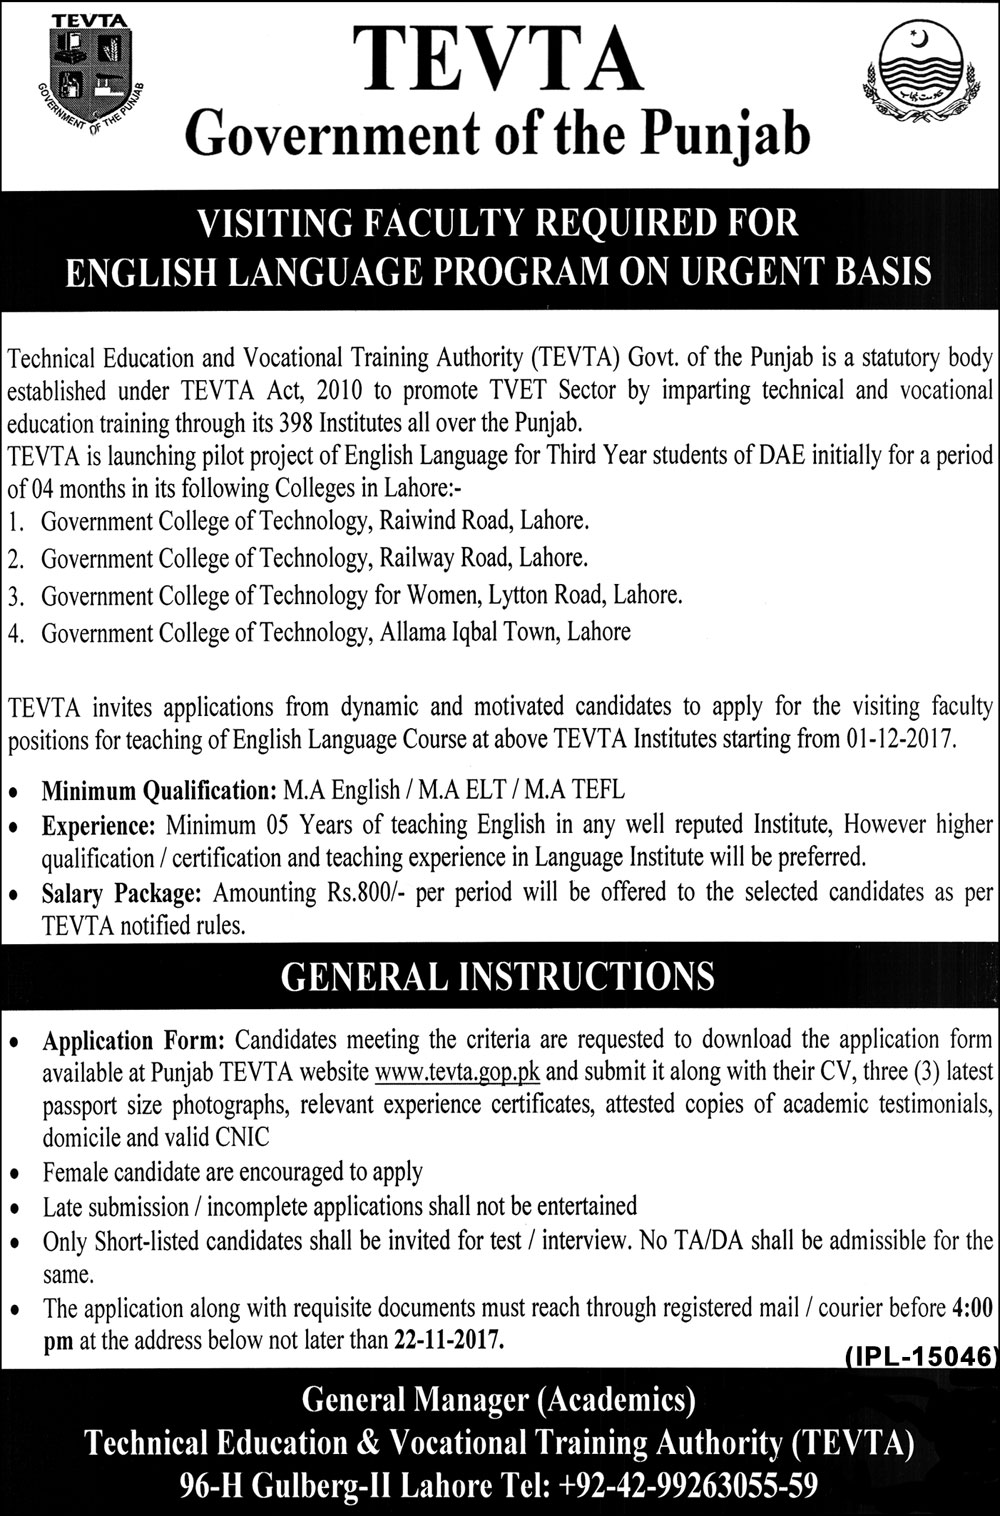 TEVTA Jobs Government of the Punjab 2017